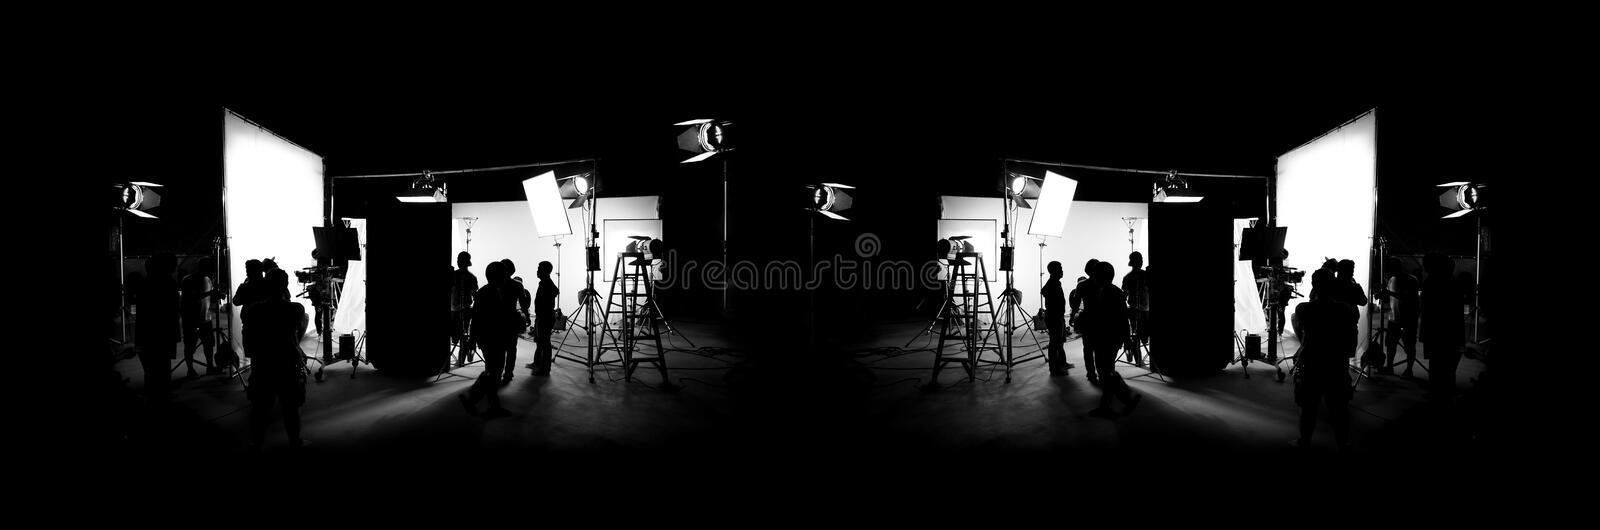 Silhouette images of video production behind the scenes stock photography